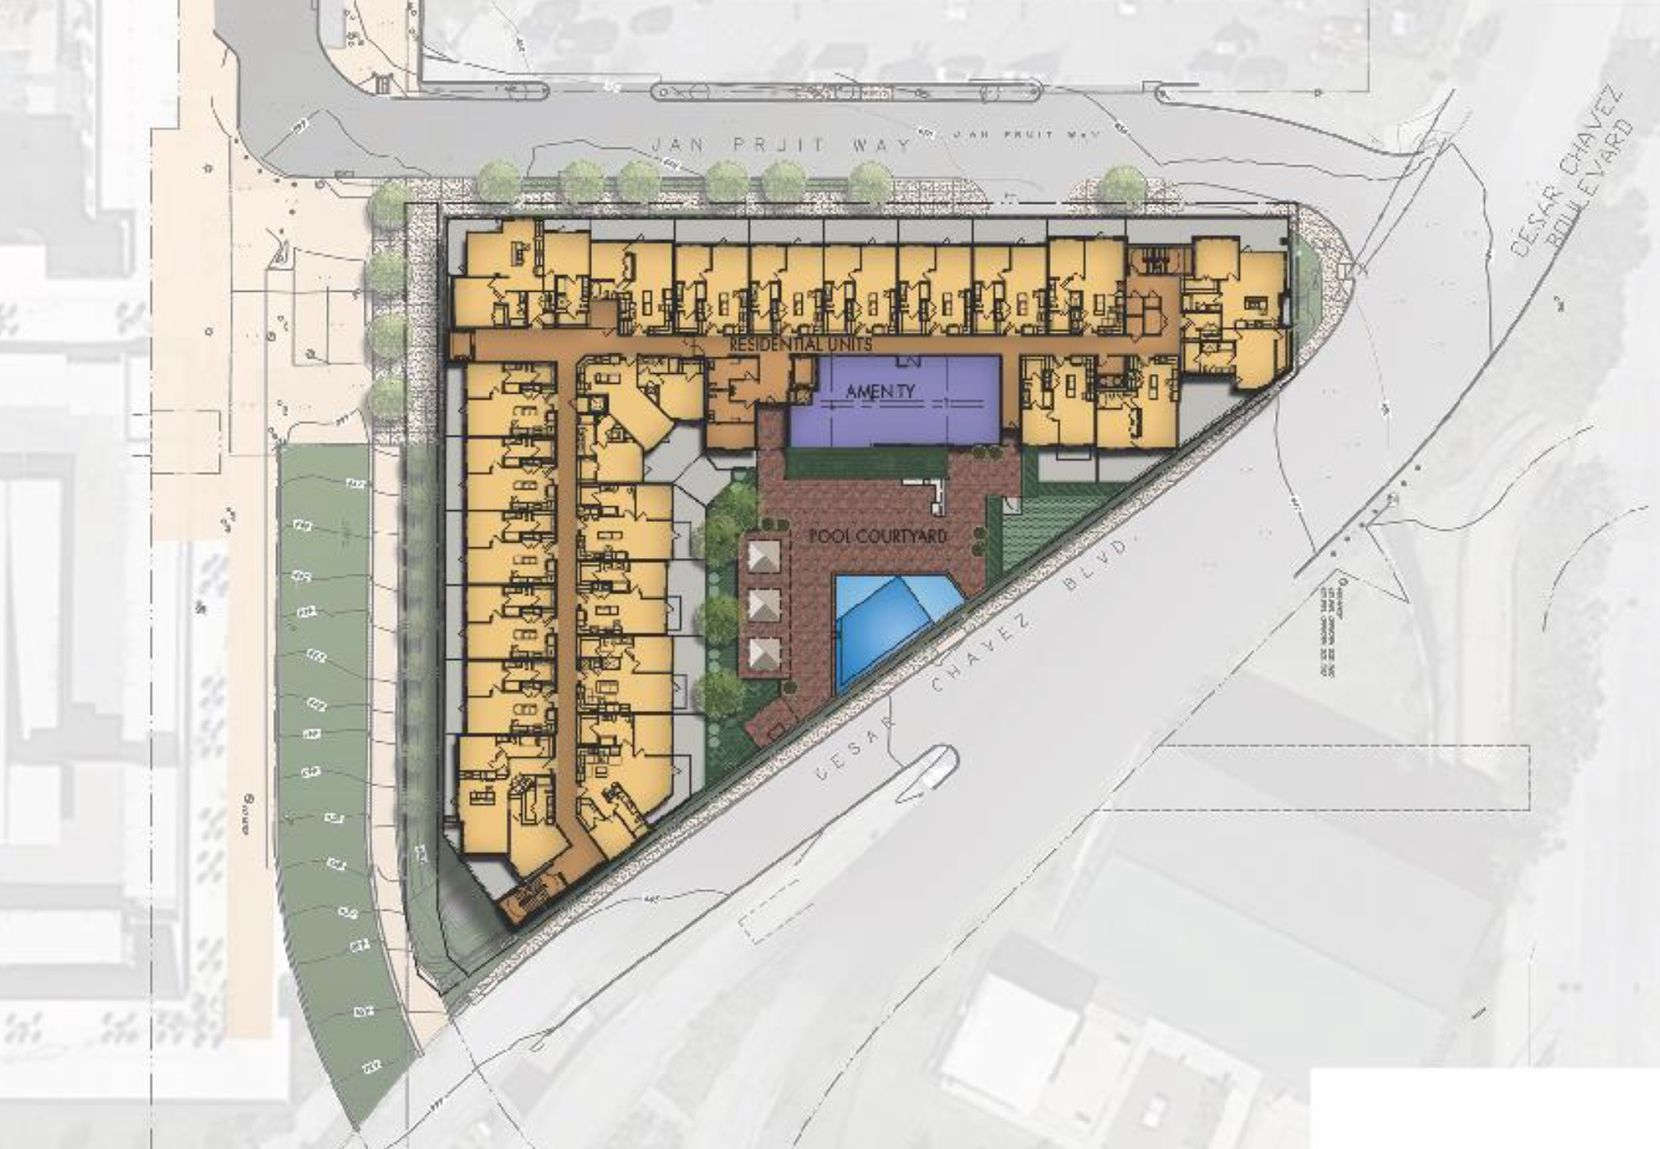 The six-story rental community is planned on one of the last building sites in the Dallas Farmers Market area.